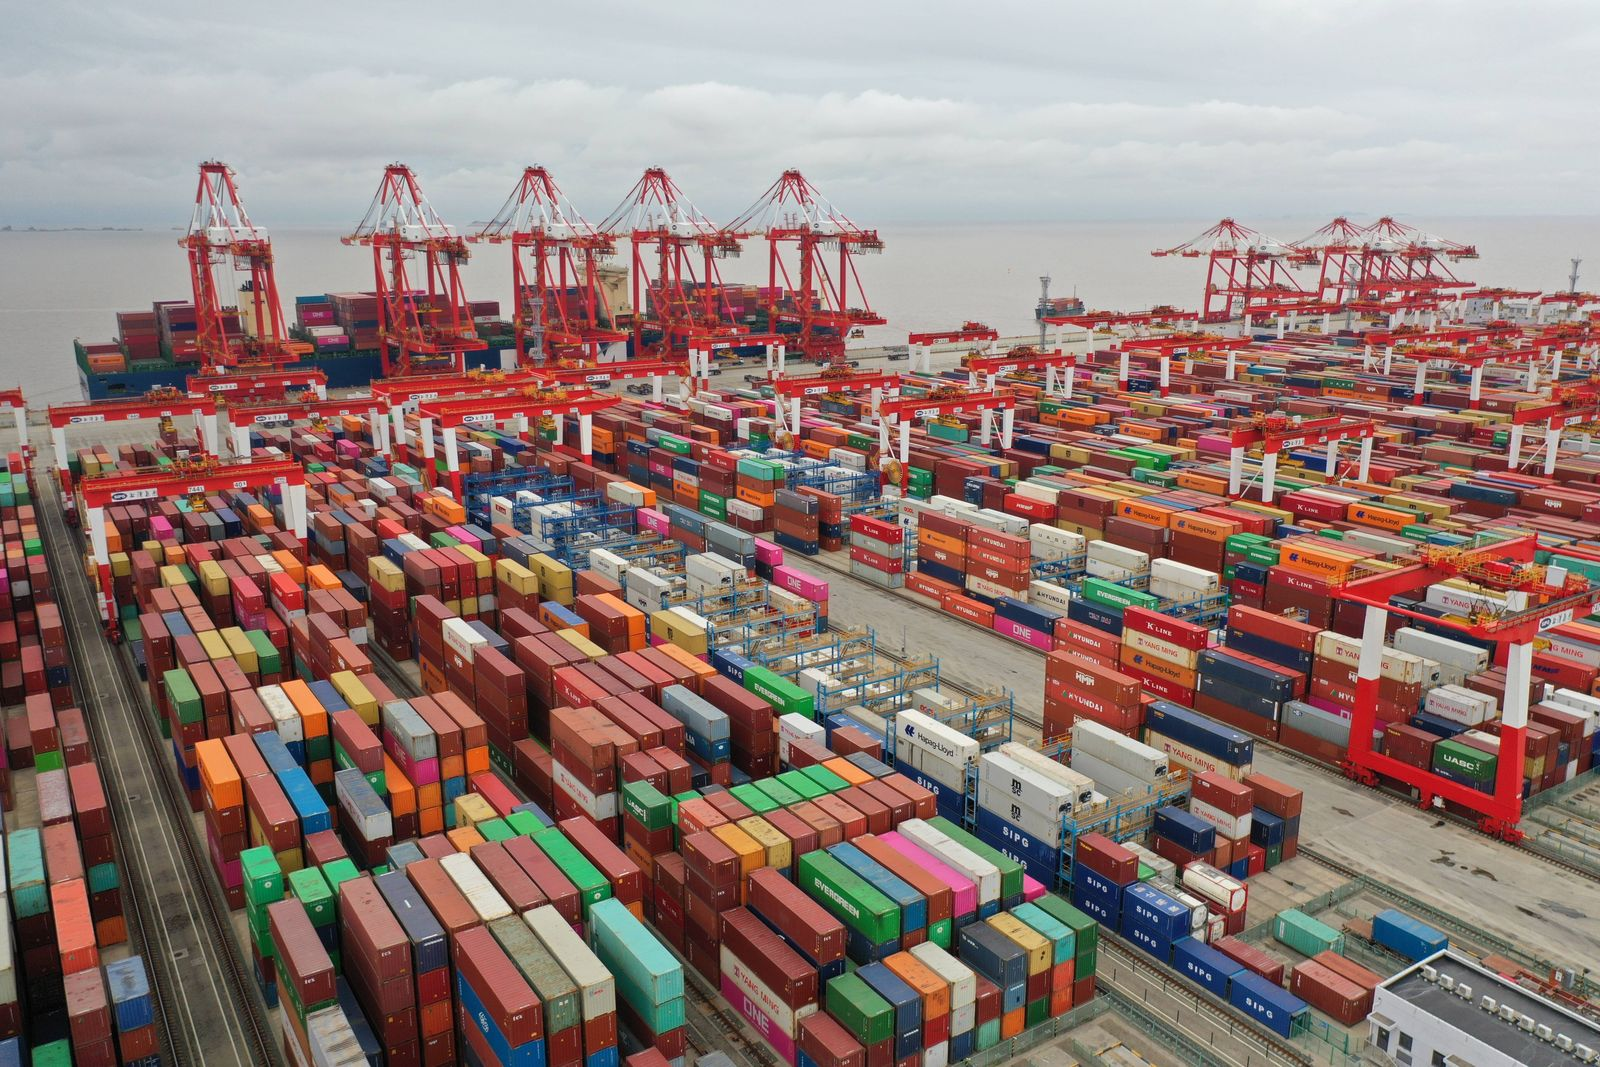 SHANGHAI, CHINA - MAY 19: Aerial view of shipping containers sitting stacked at Yangshan Deepwater Port on May 19, 2021